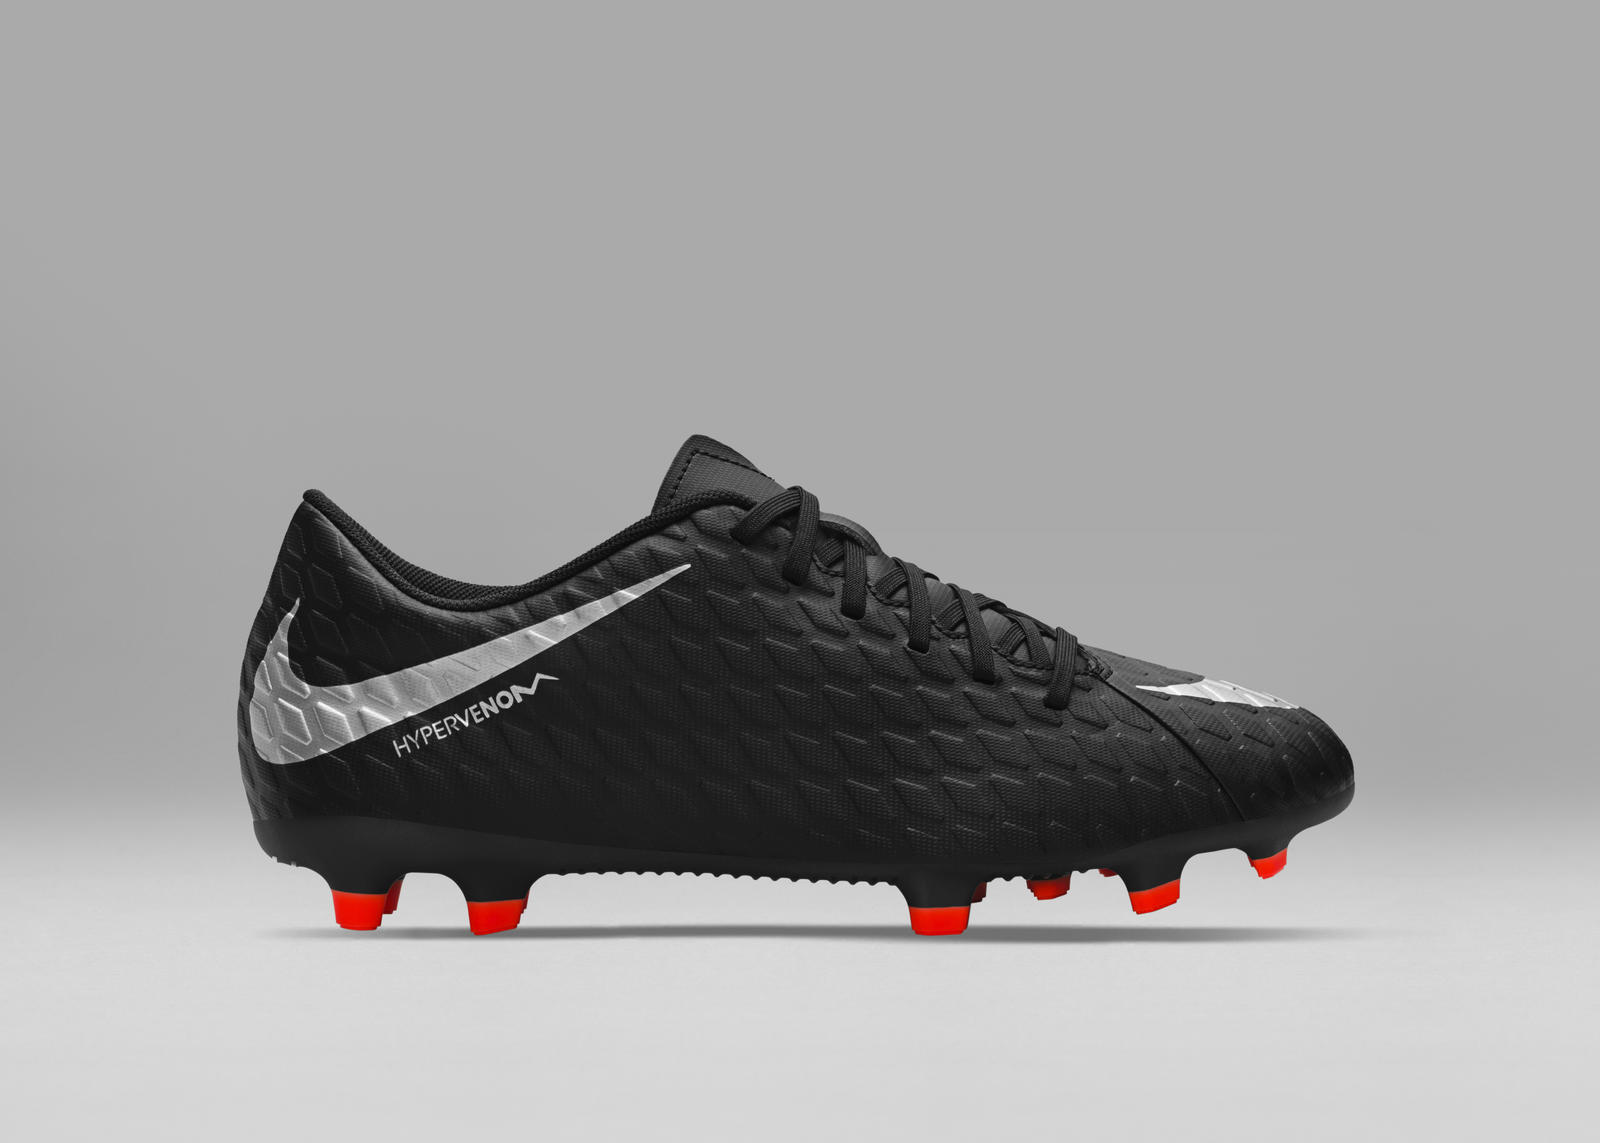 Sp17 gfb hypervenom 3 black 852547 001 hypervenom phade fg 1 8 rectangle 1600